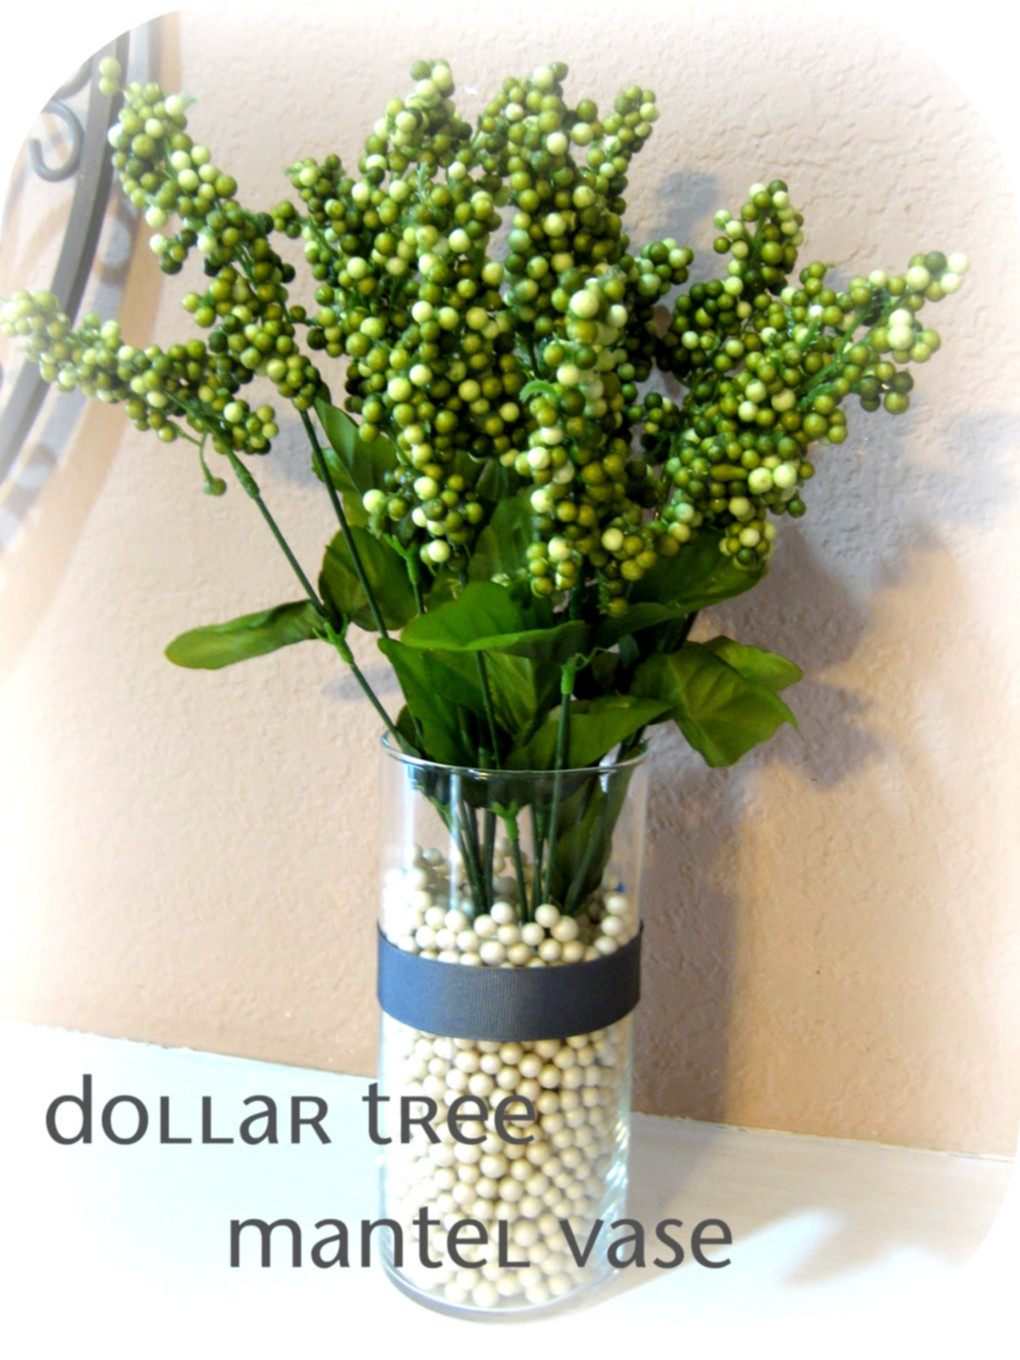 dollar tree hurricane vase of wife on a budget dollar tree hurricane vases dollar tree vases with wife on a budget dollar tree hurricane vases dollar tree vases pictures